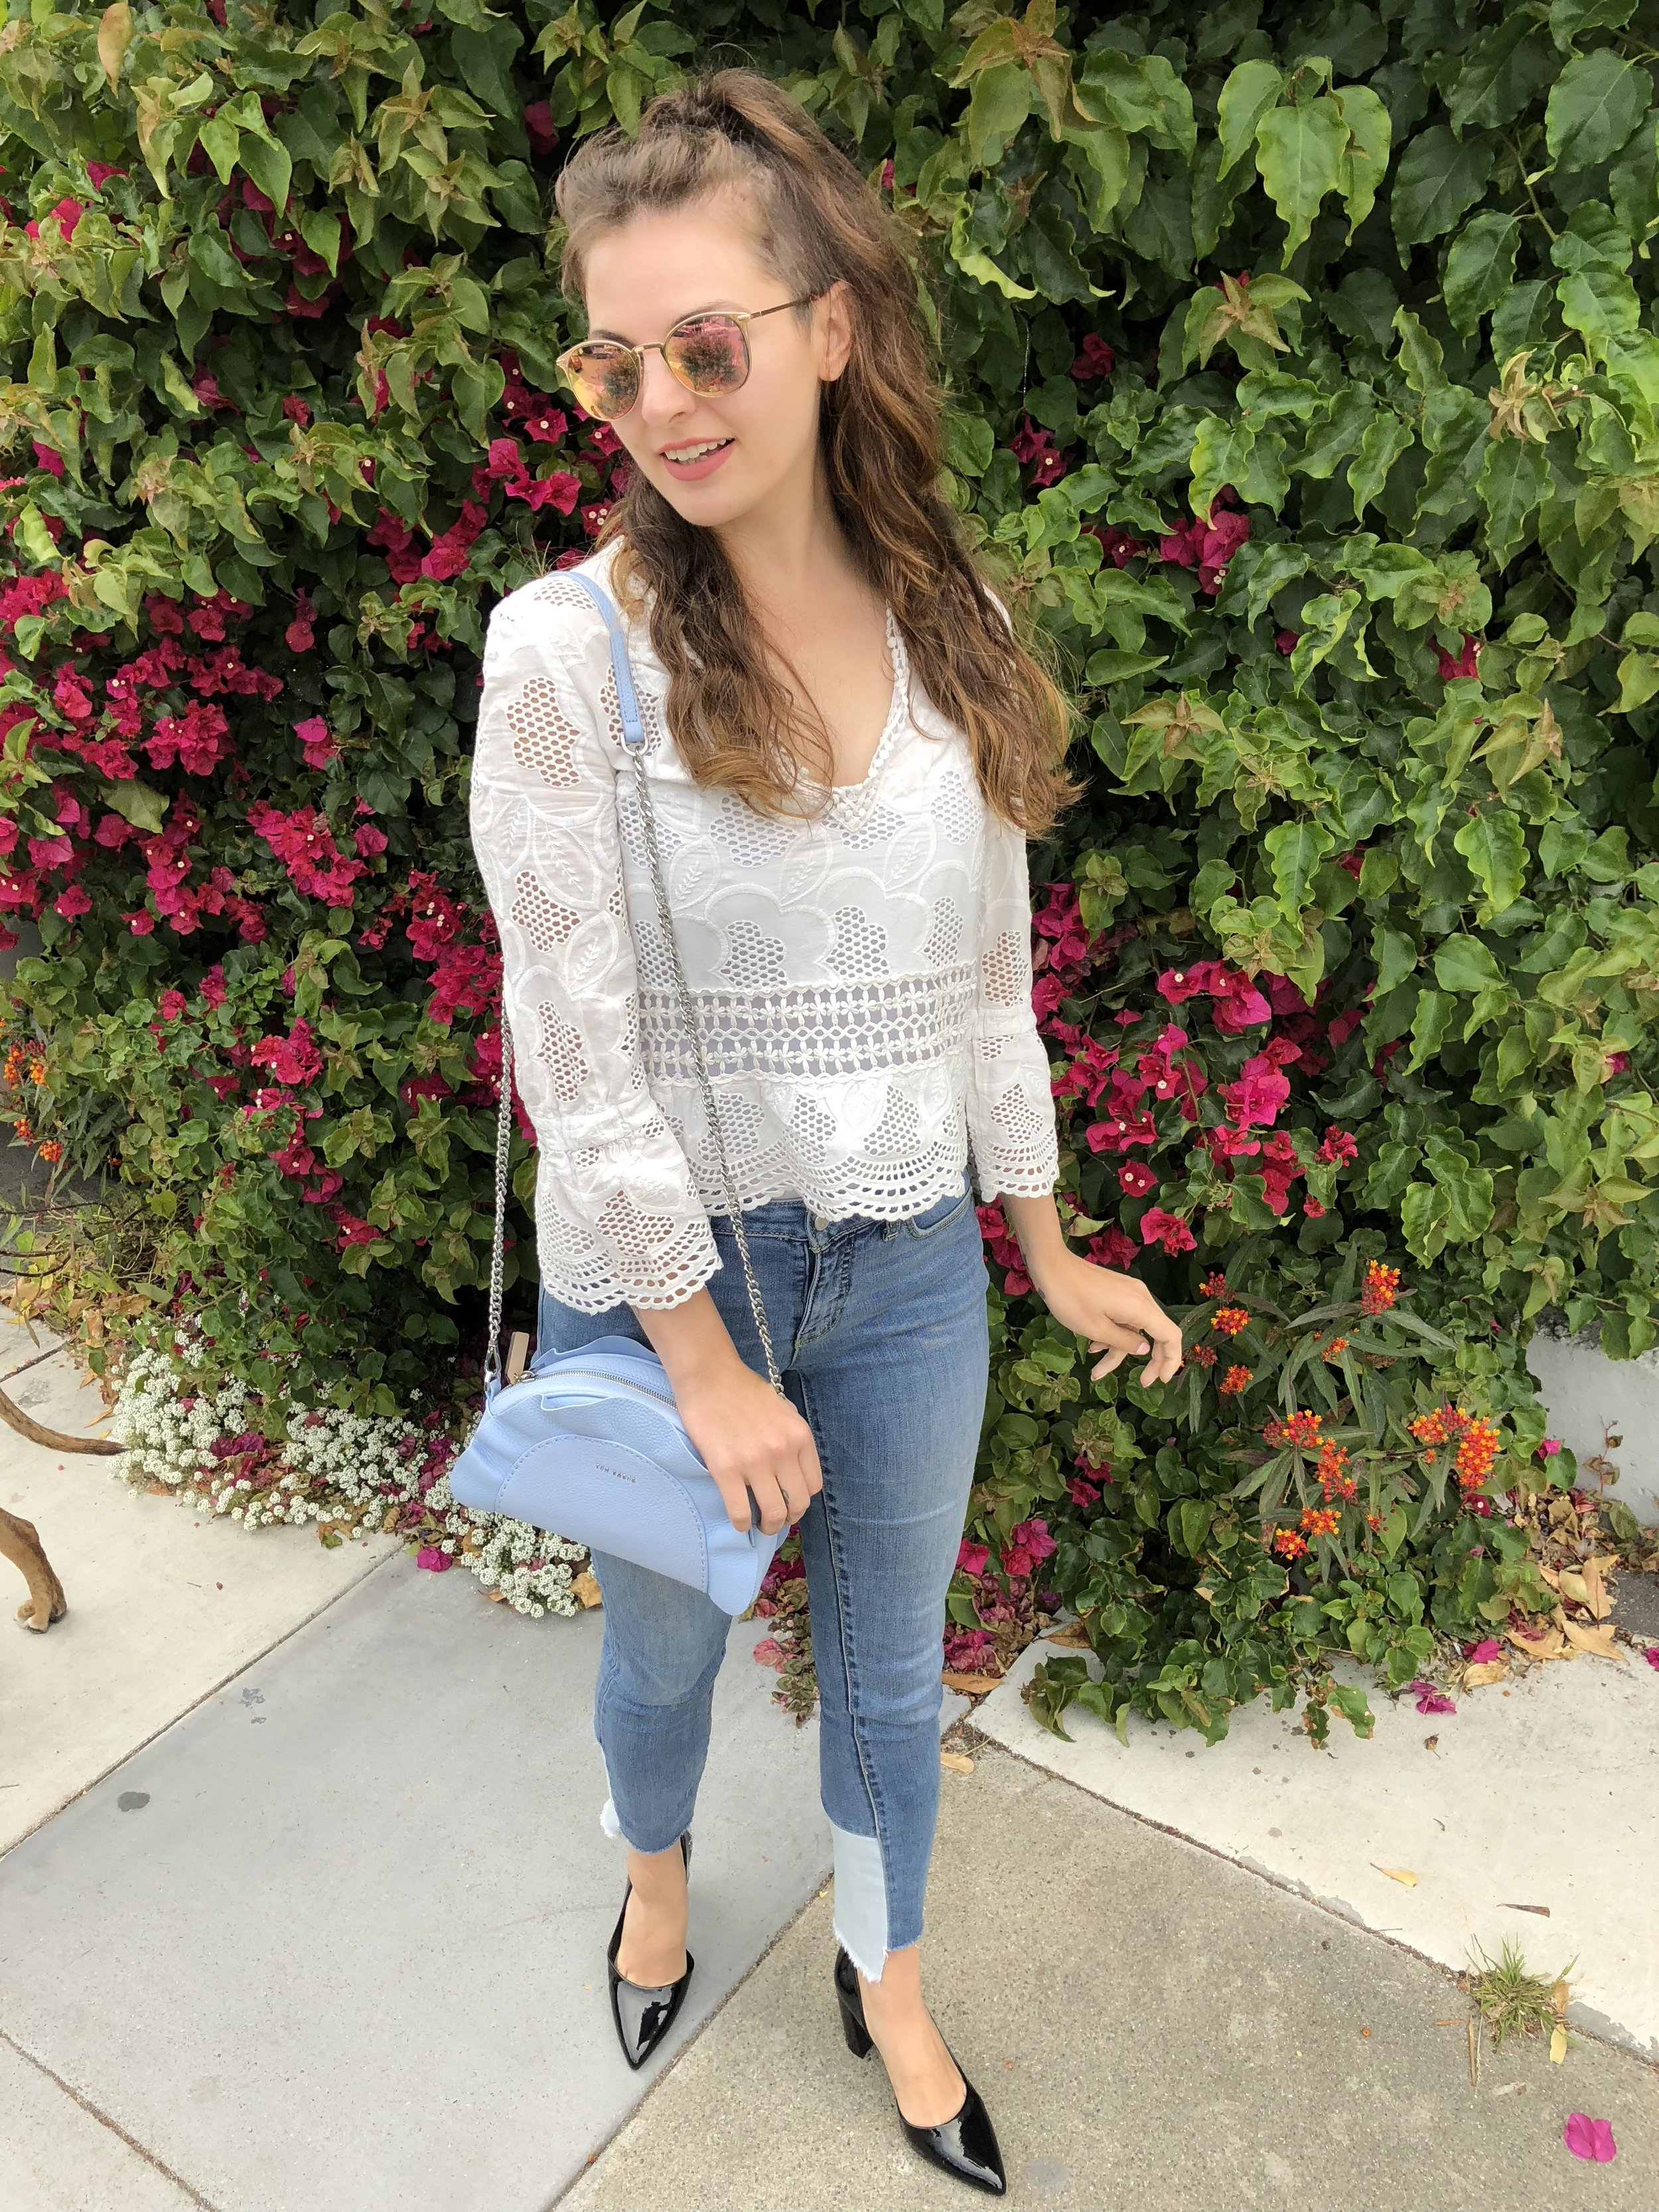 White Lace top for Summer Style